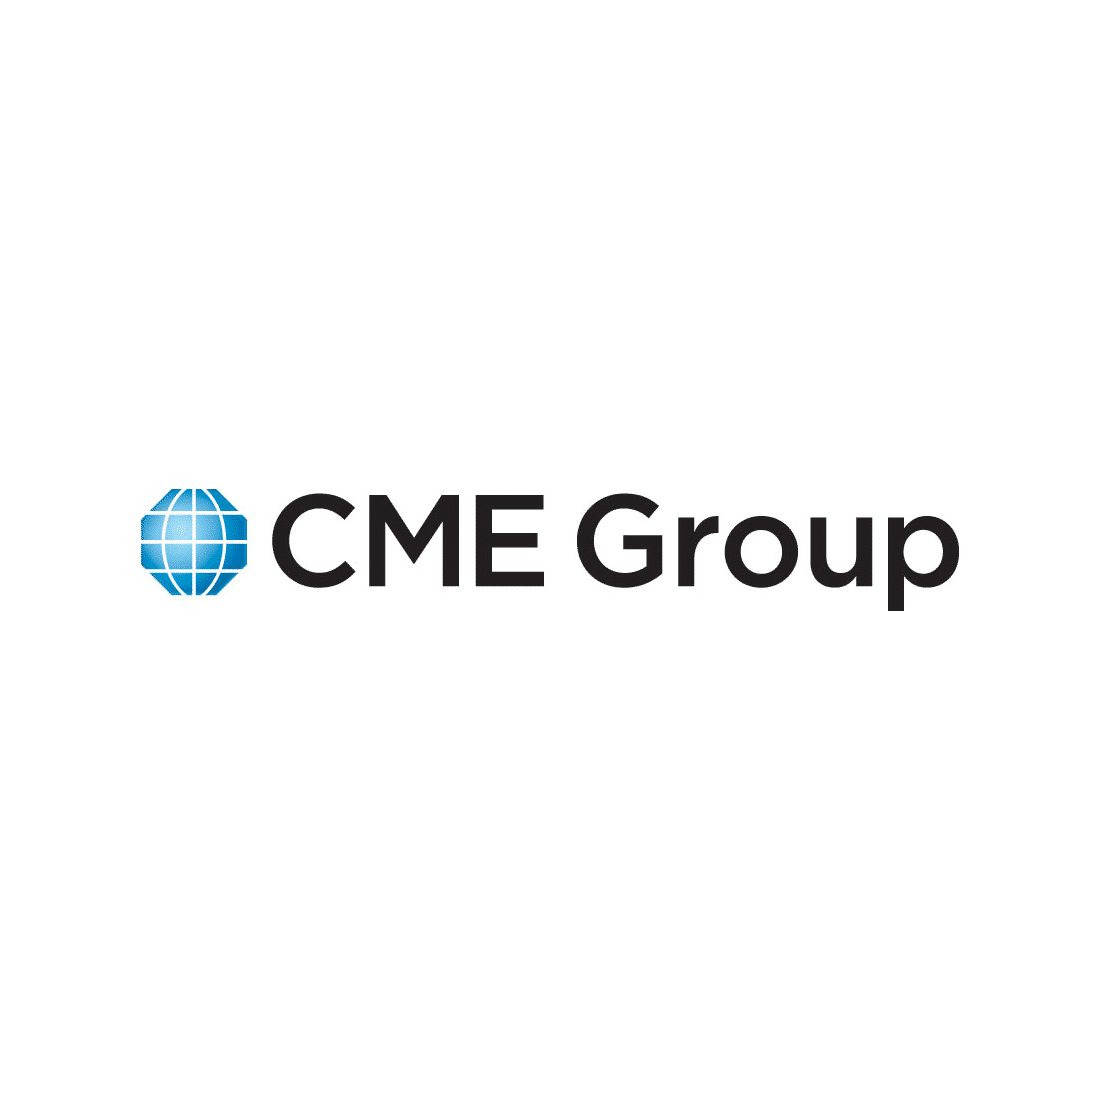 CME Reports Only a 4% Comeback in Revenues for Q3 despite Record Options Volume